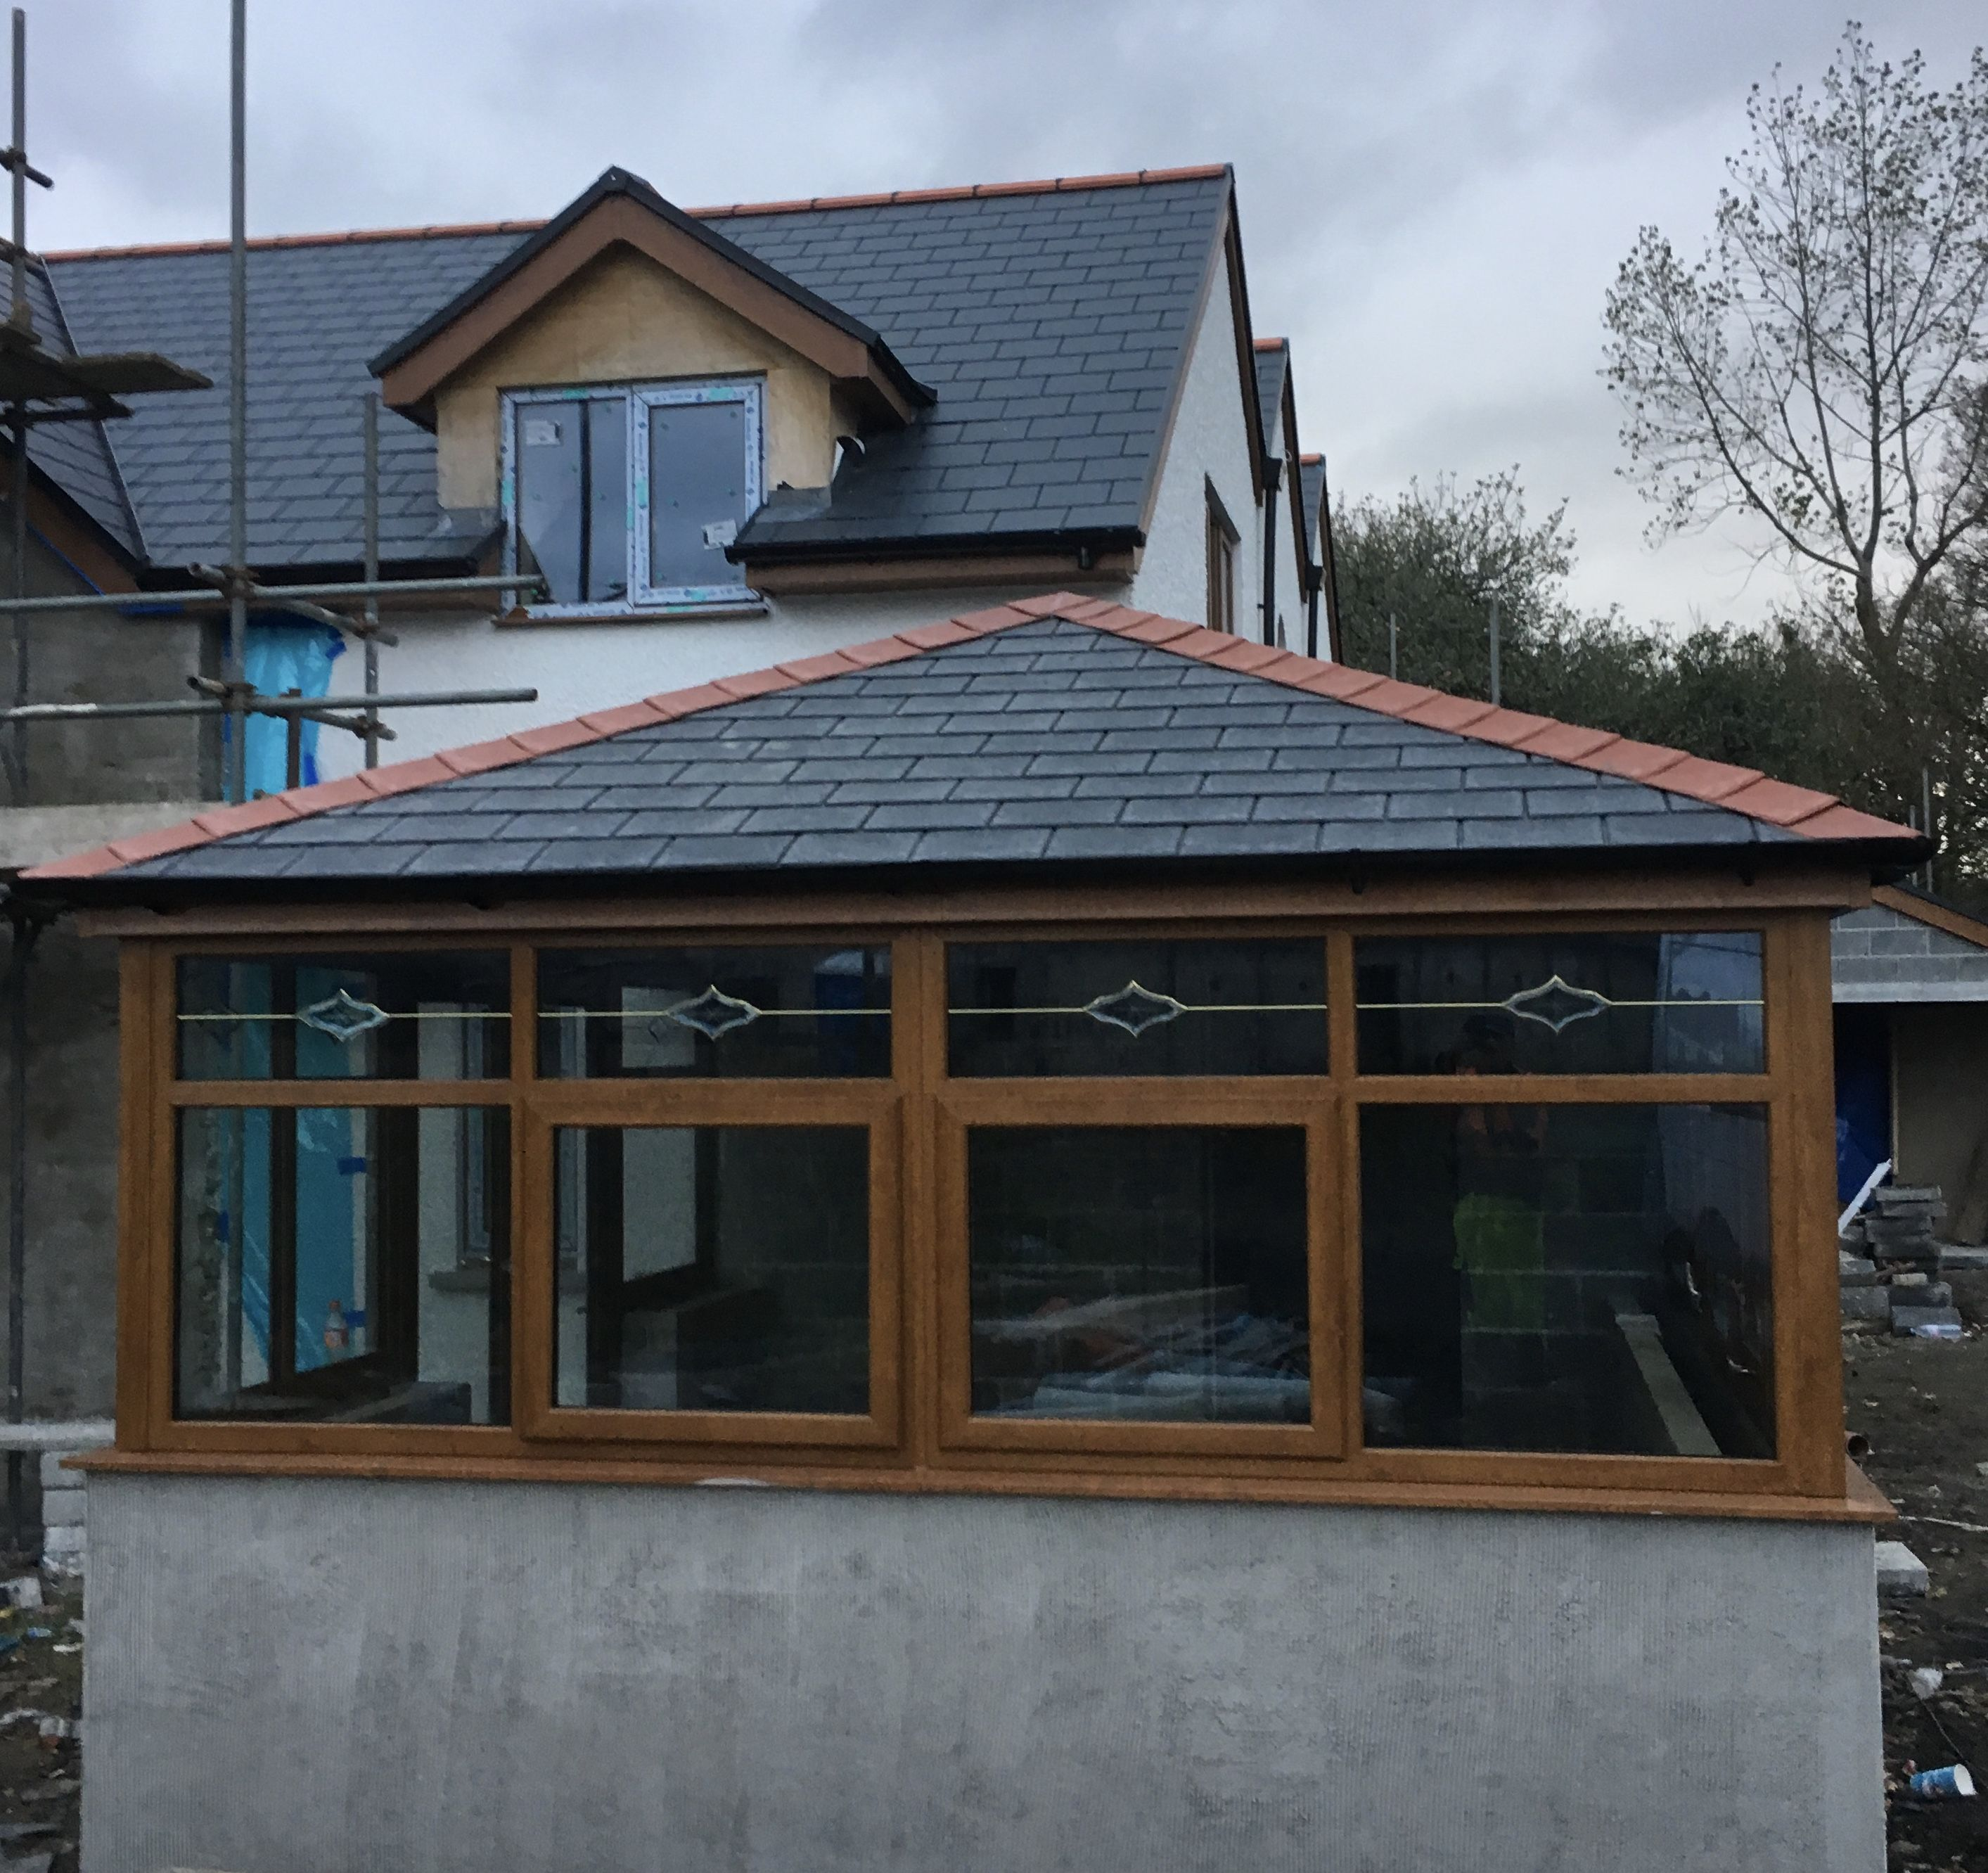 We Pride Ourselves On Great Customer Service On A Recent Installation Going The Extra Mile To Help Complete This Warm Ro Warm Roof Double Glazing Ridge Tiles